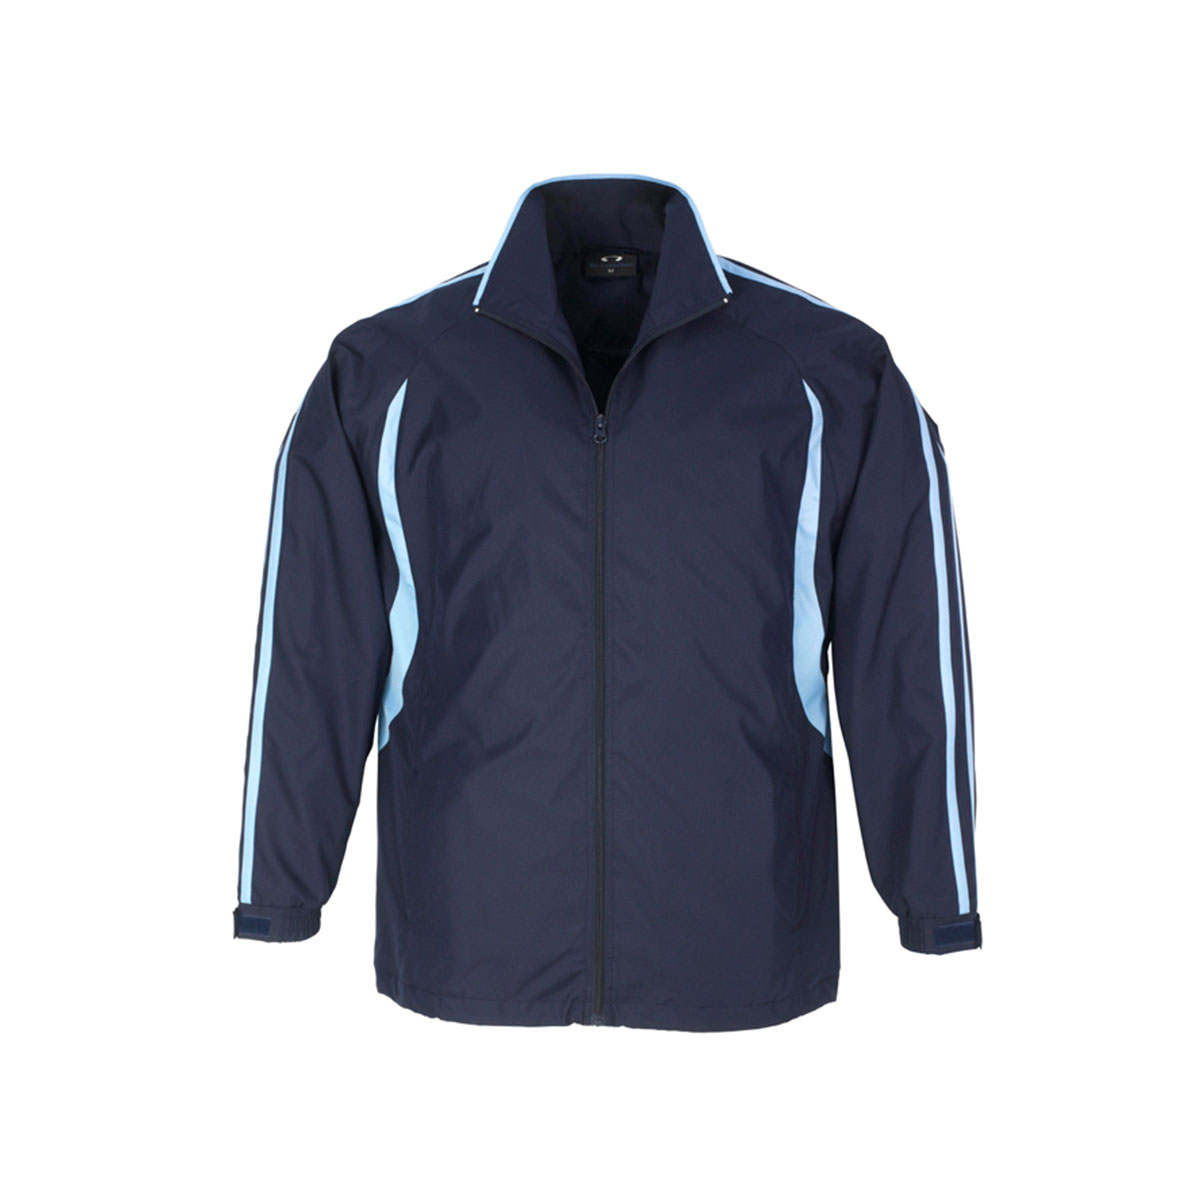 Adults Flash Track Top-Navy / Sky